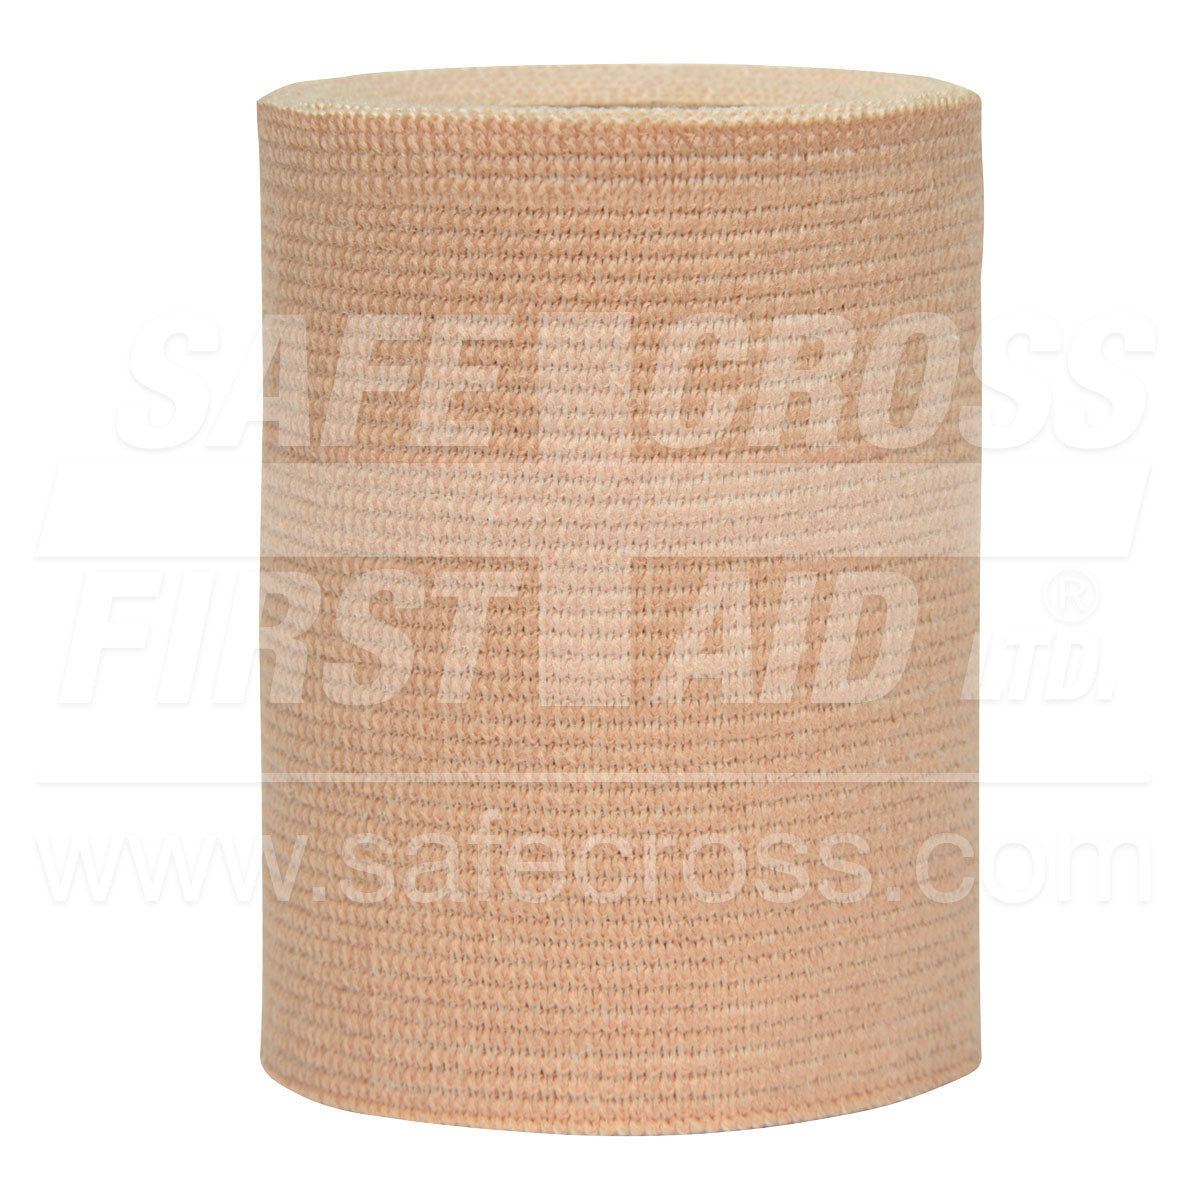 Elastic Self-Adherent Compression Bandages